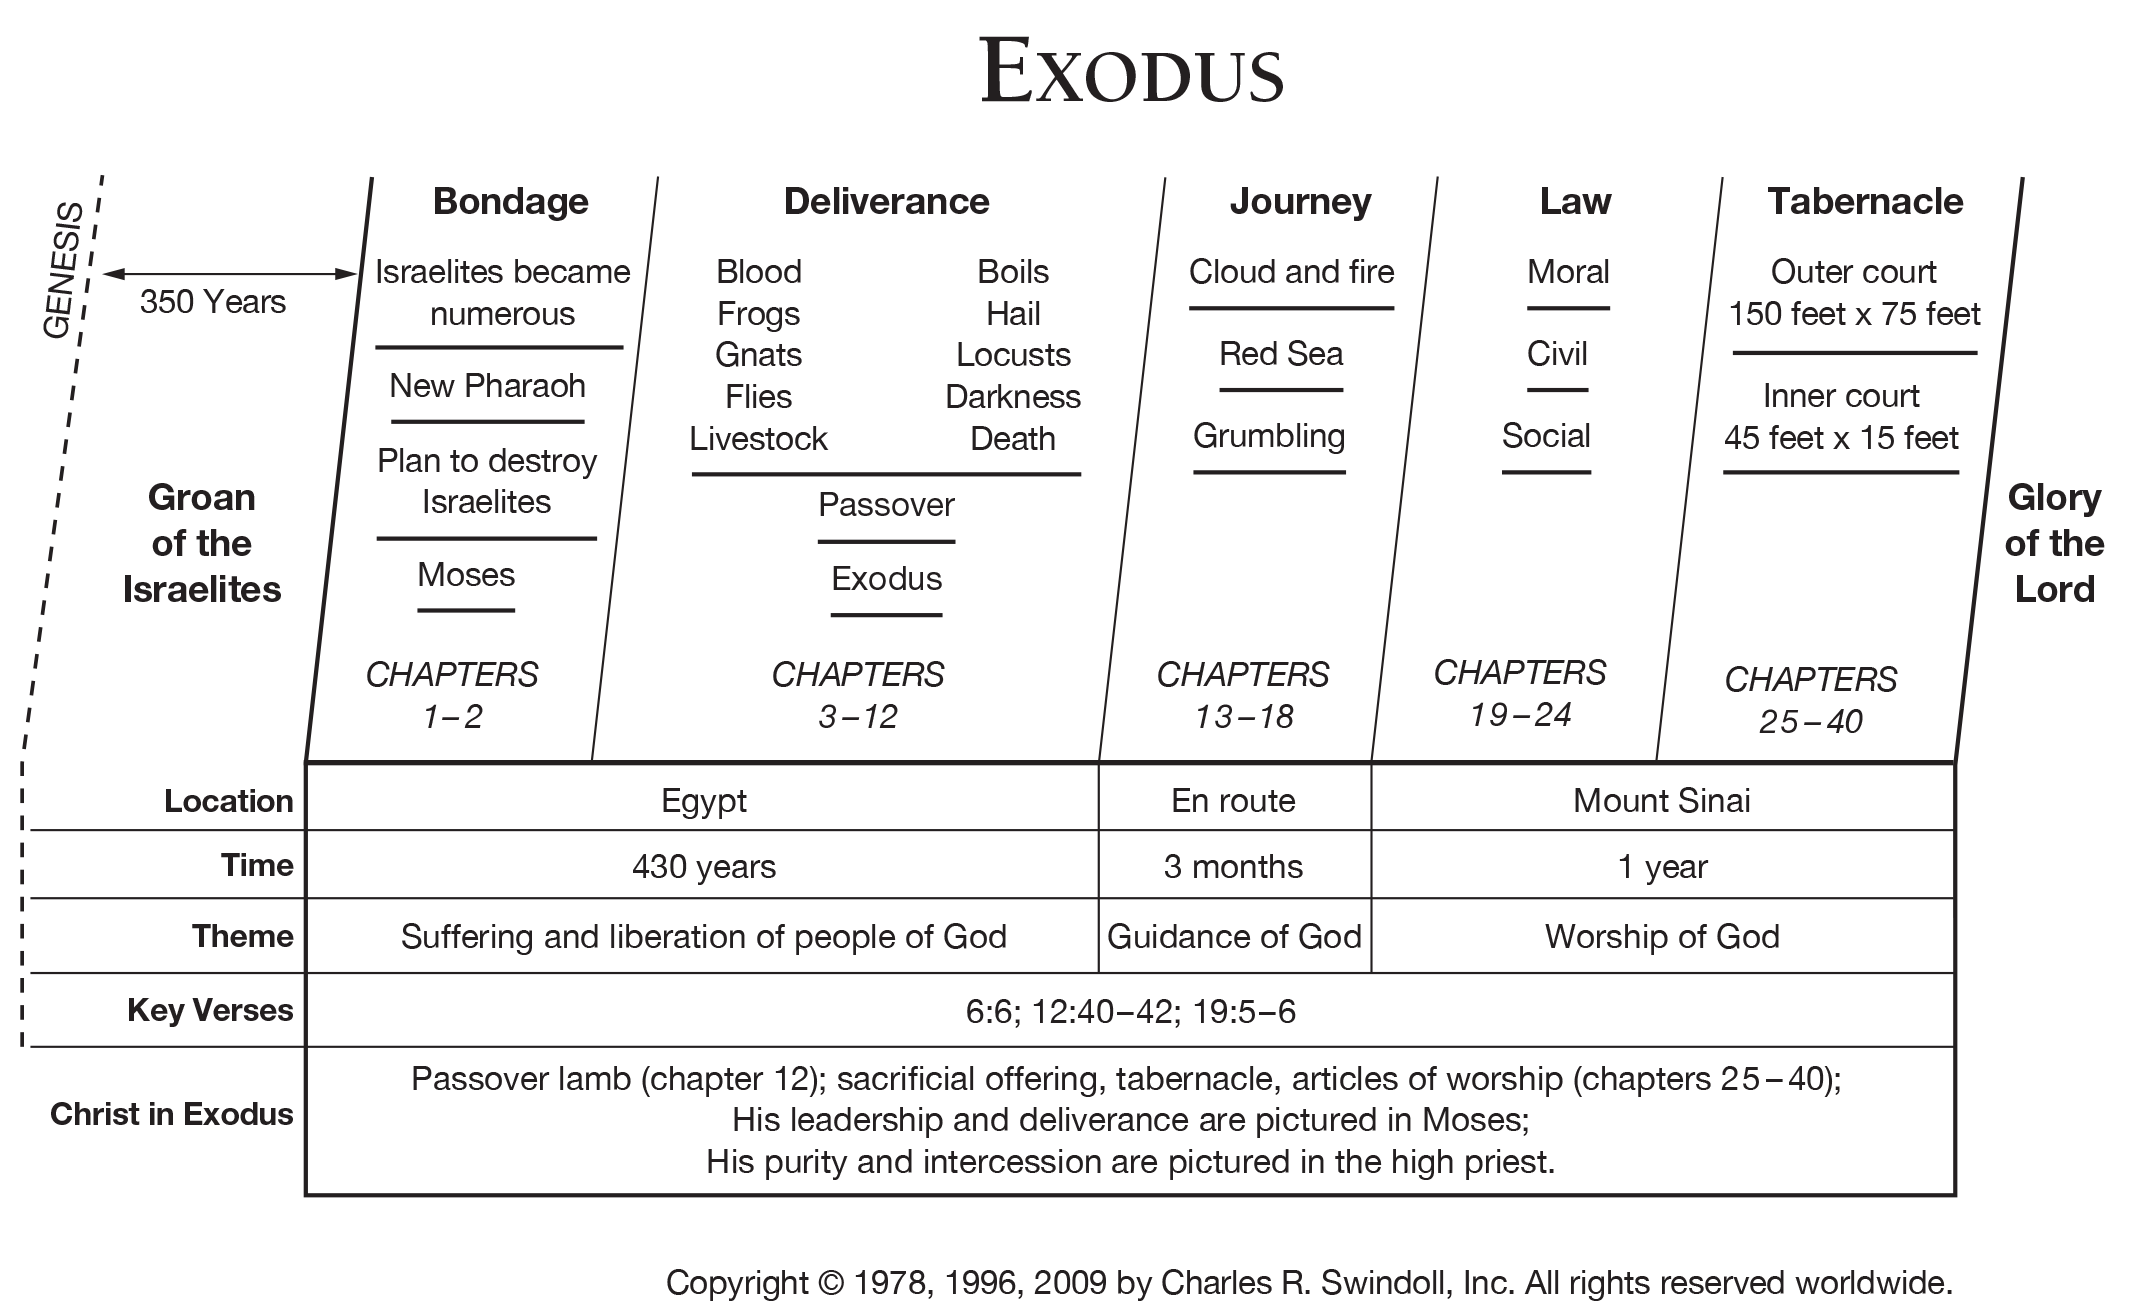 Book Of Exodus Overview